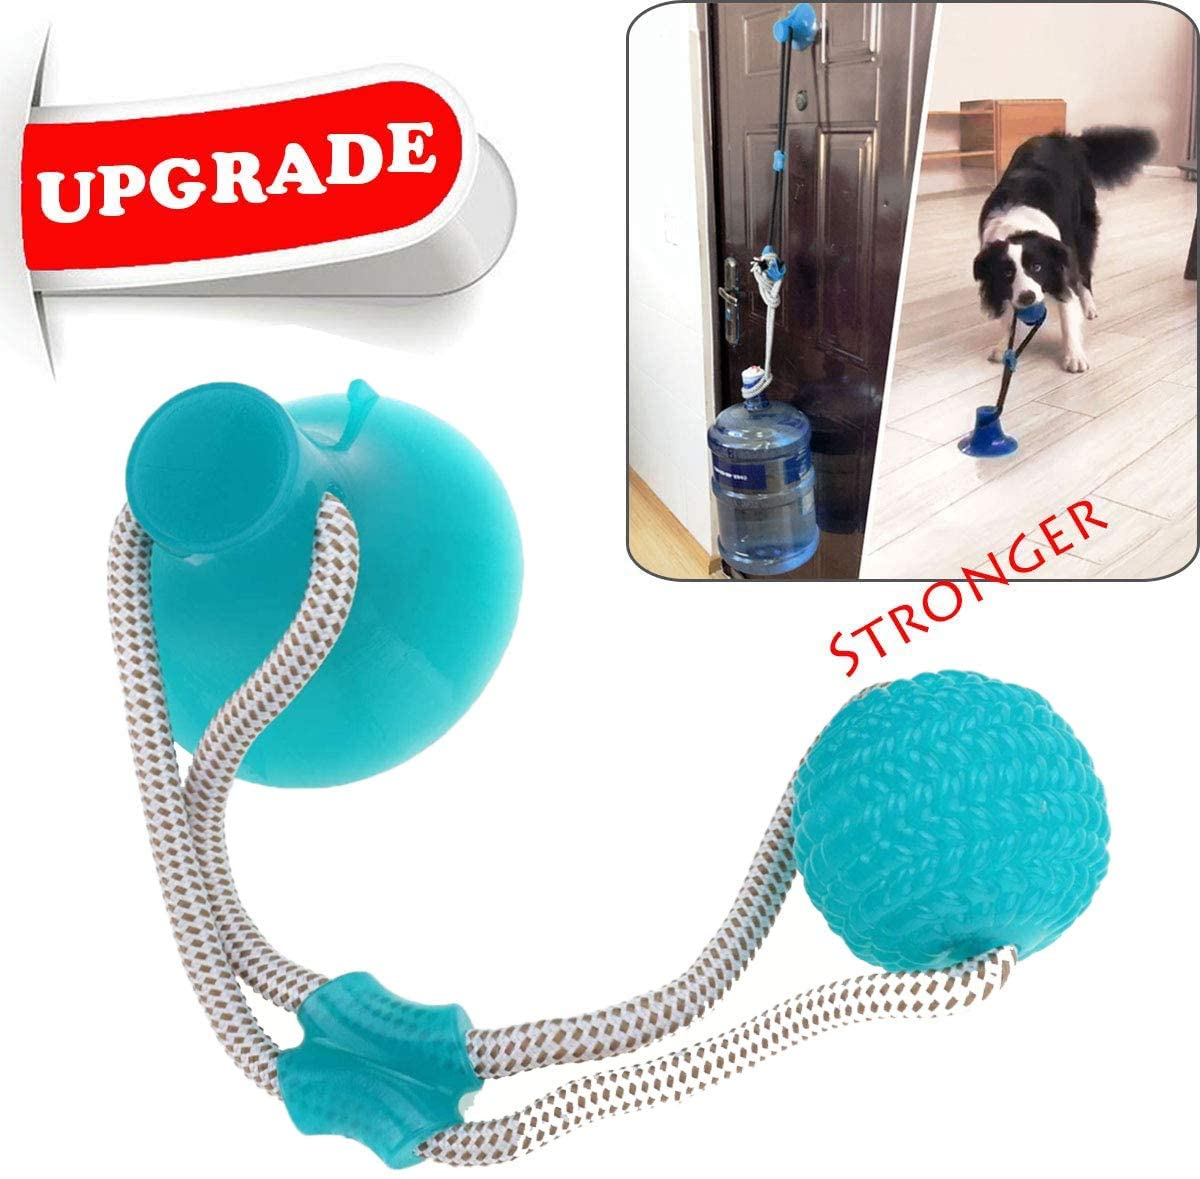 NonoGo Suction Cup Dog Toy, Pet Molar Bite Toy, Dog Multifunction Interactive Ropes Toys, Self-Playing Rubber Chew Ball Toy for Teeth Cleaning, Suitable for Dogs PS1001